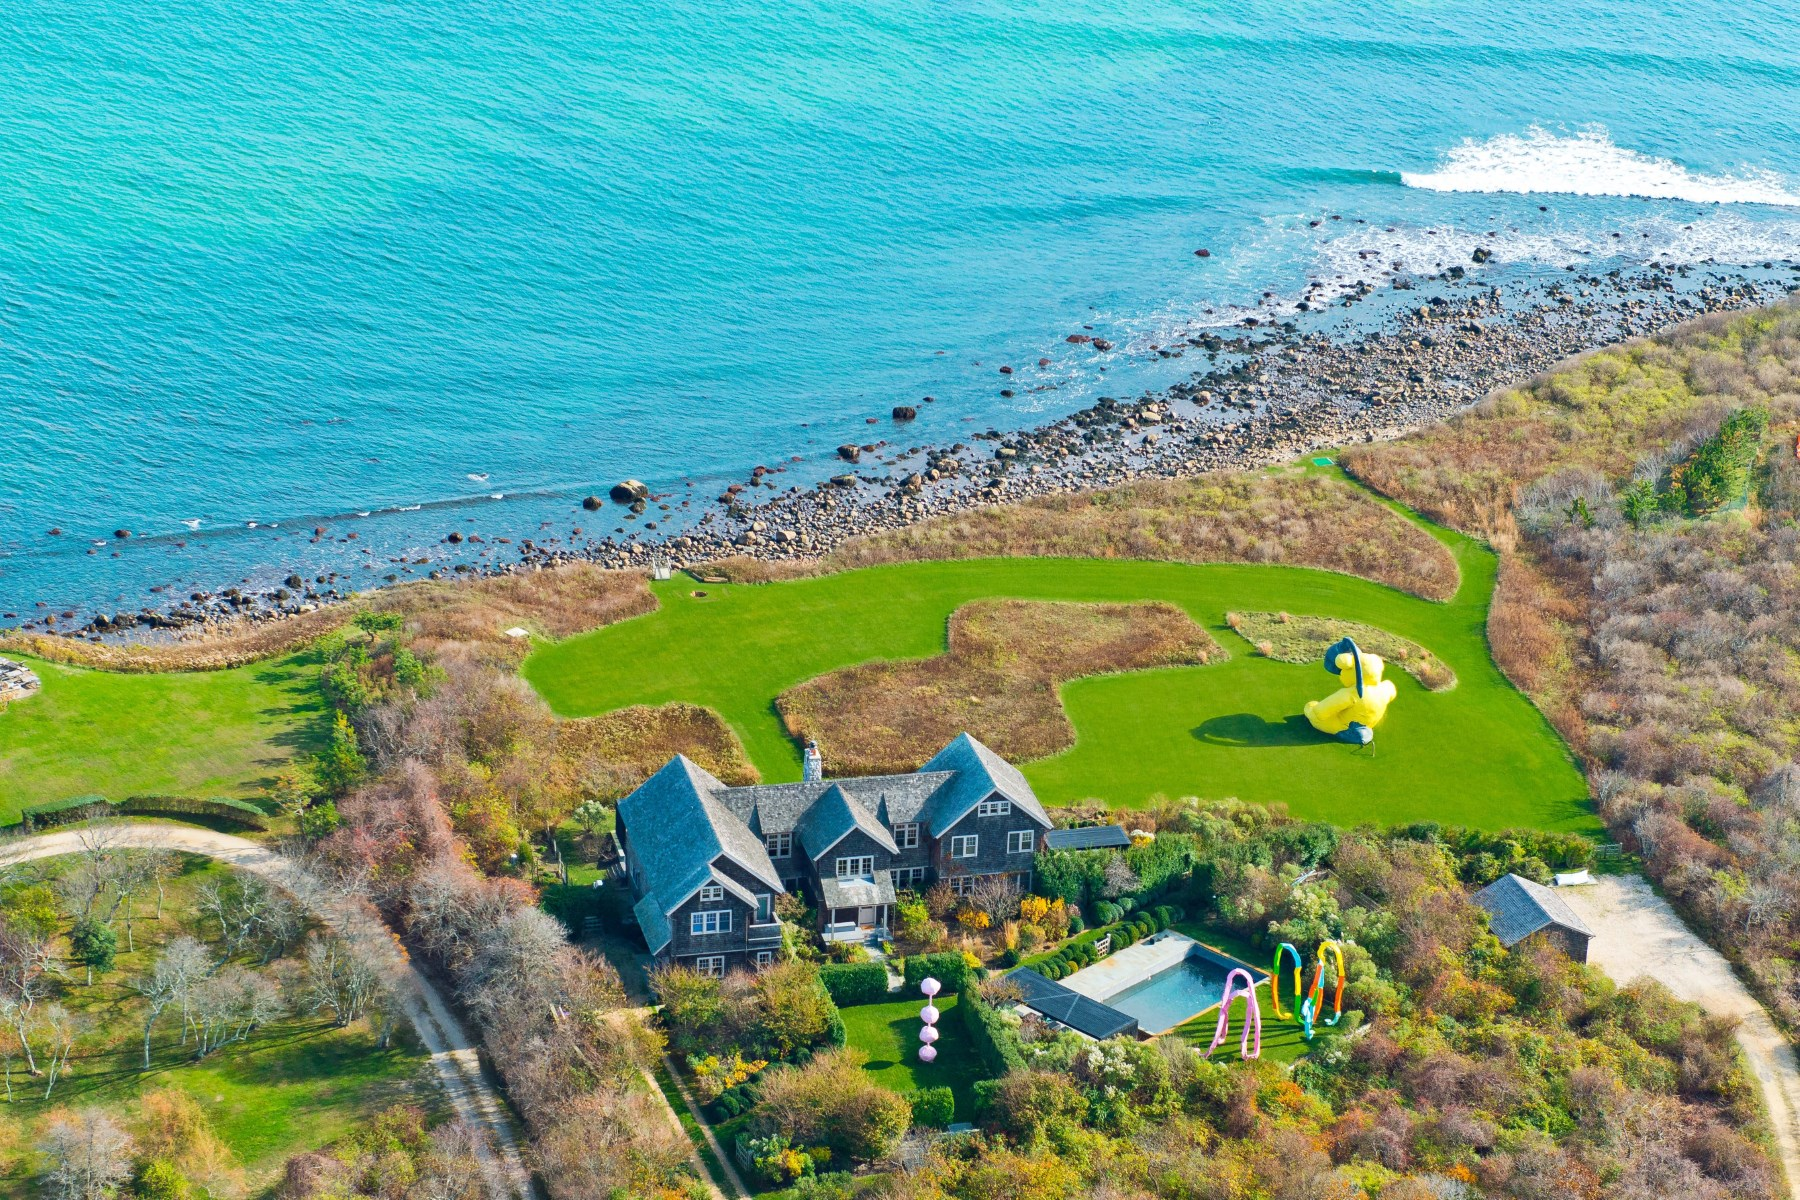 Single Family Home for Sale at Montauk Moorlands 406 Old Montauk Highway Montauk, New York 11954 United States